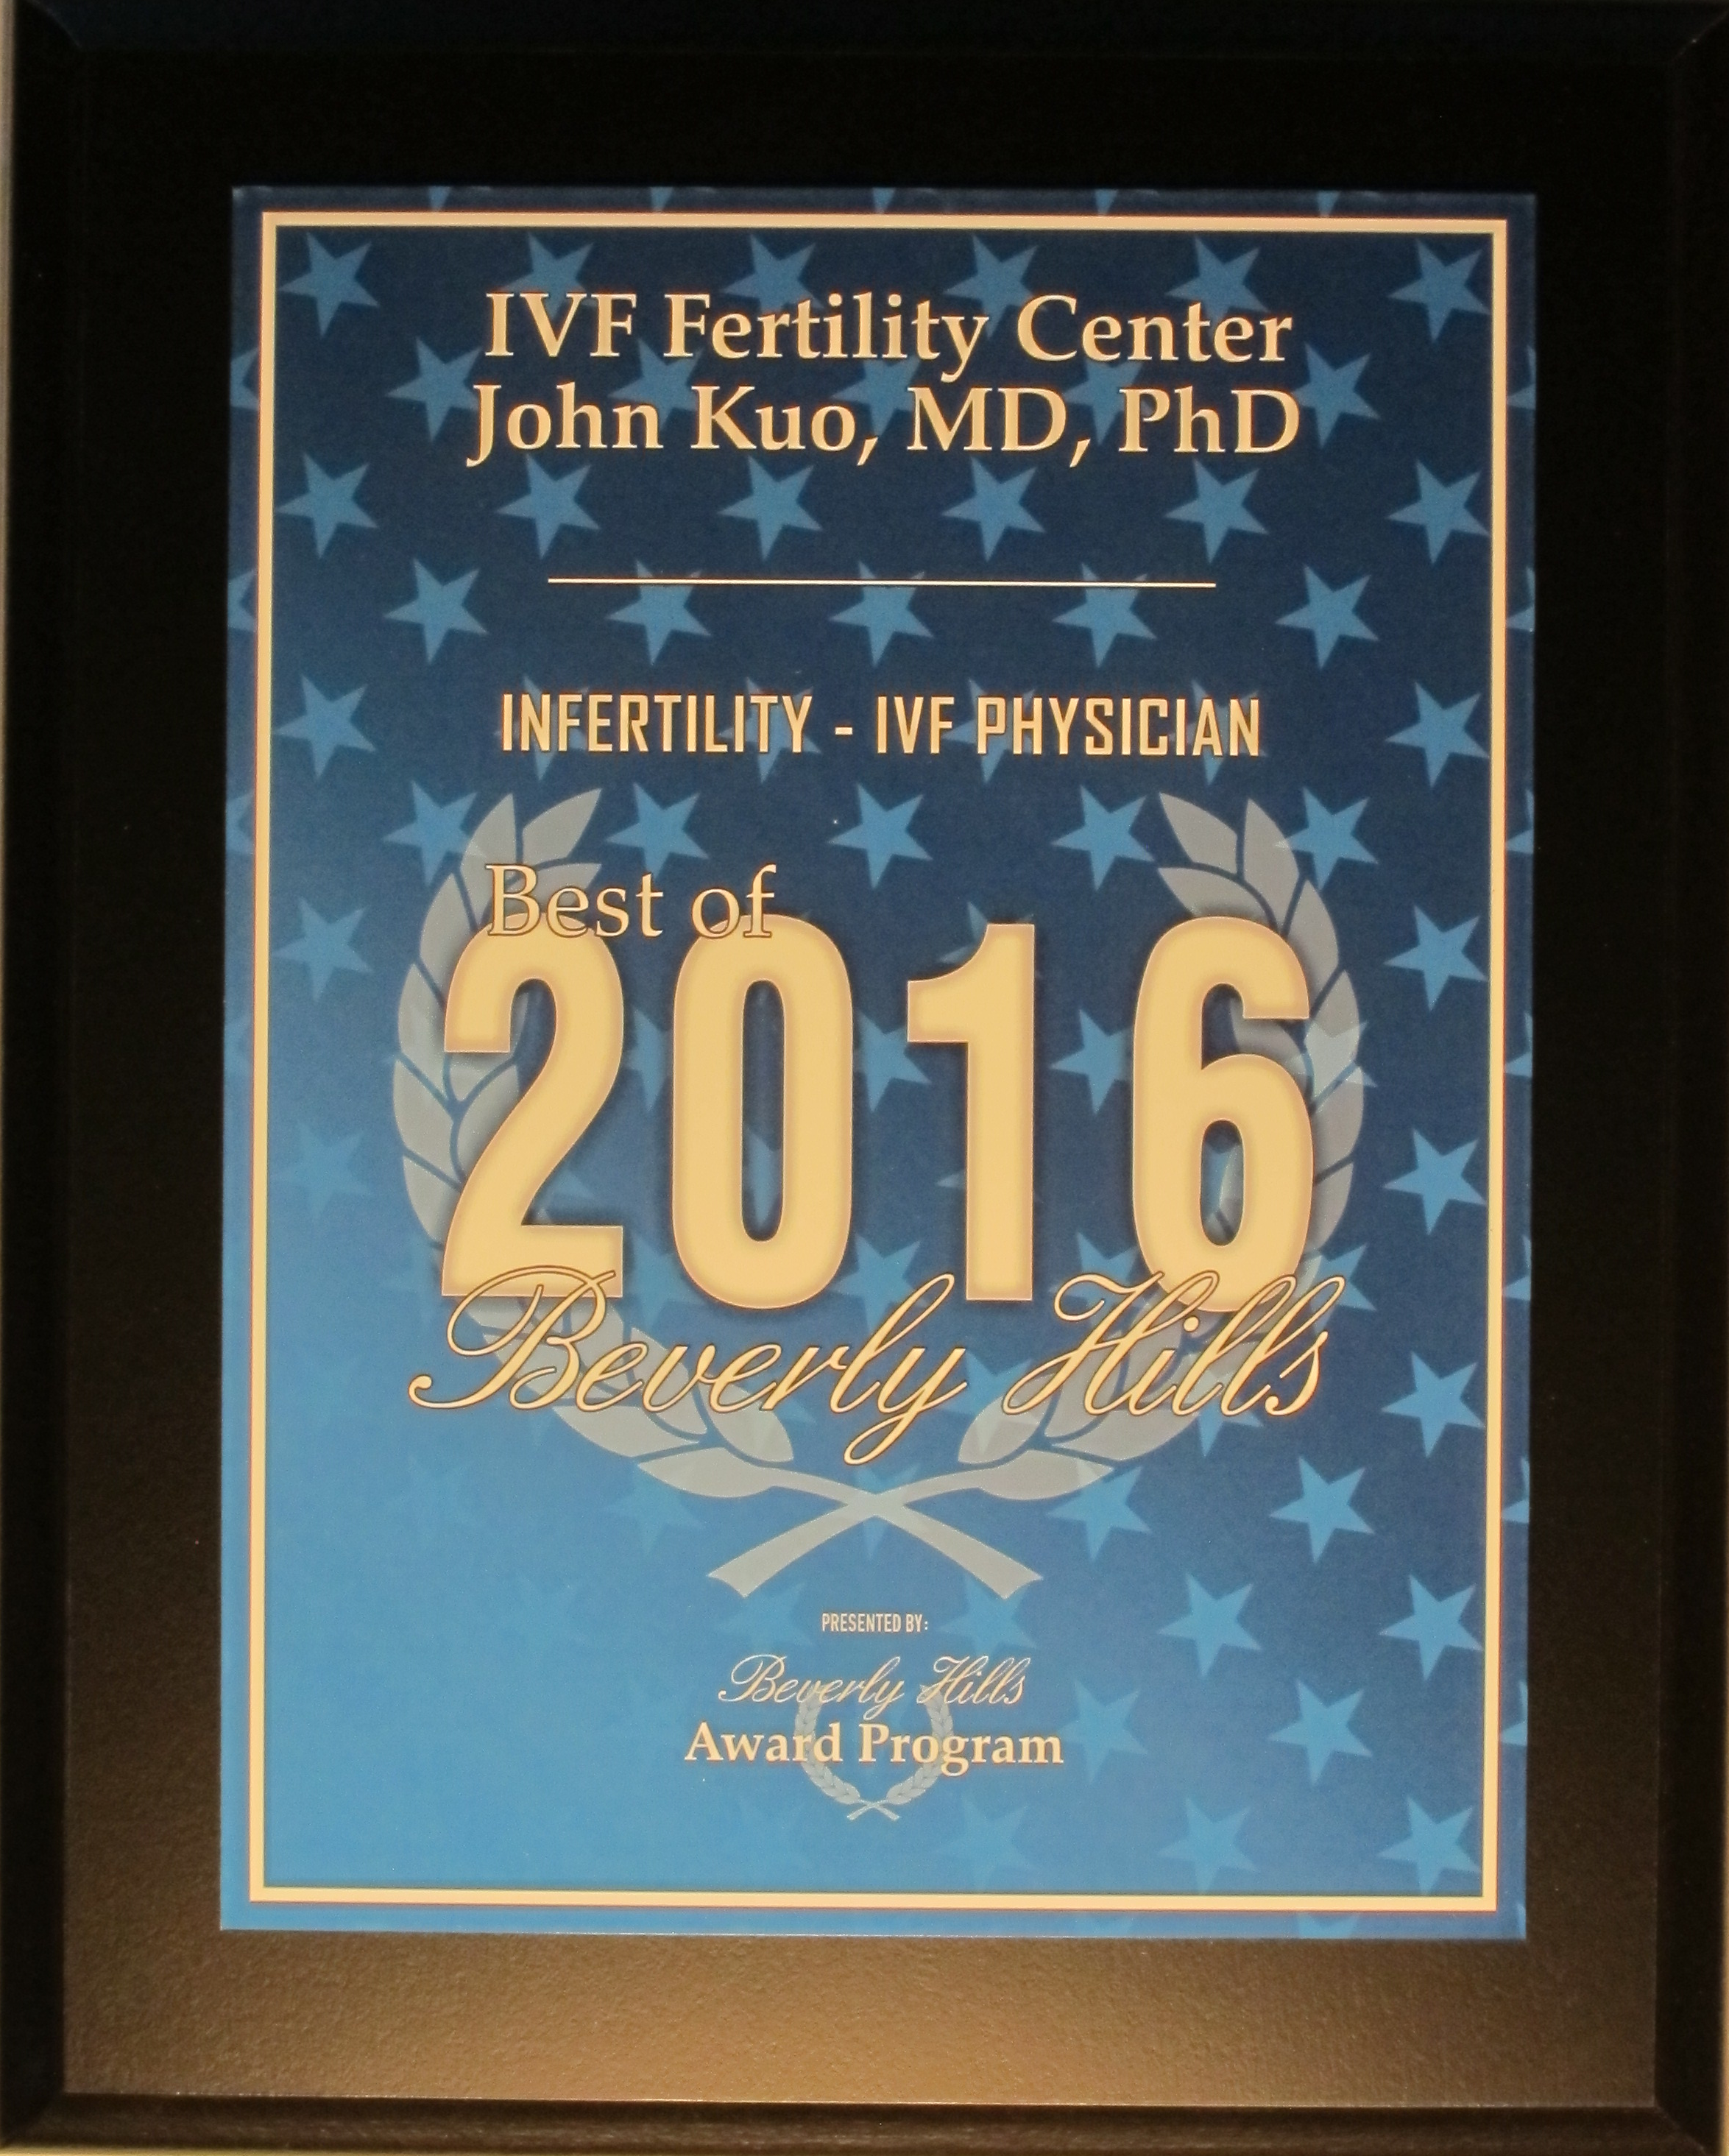 Ivf Fertility Center Beverly Hills 3108888448 John Kuo. Free Auto Insurance Quotes Ontario. Simon Cancer Center Indianapolis. Porsche Driving Experience A Call To College. Alarm System Complaints Vista Wellness Center. Warehousing And Supply Chain Management. Dominion Medical Clinic Pretty Wedding Makeup. Reservation System Wordpress. Online Lean Six Sigma Certification